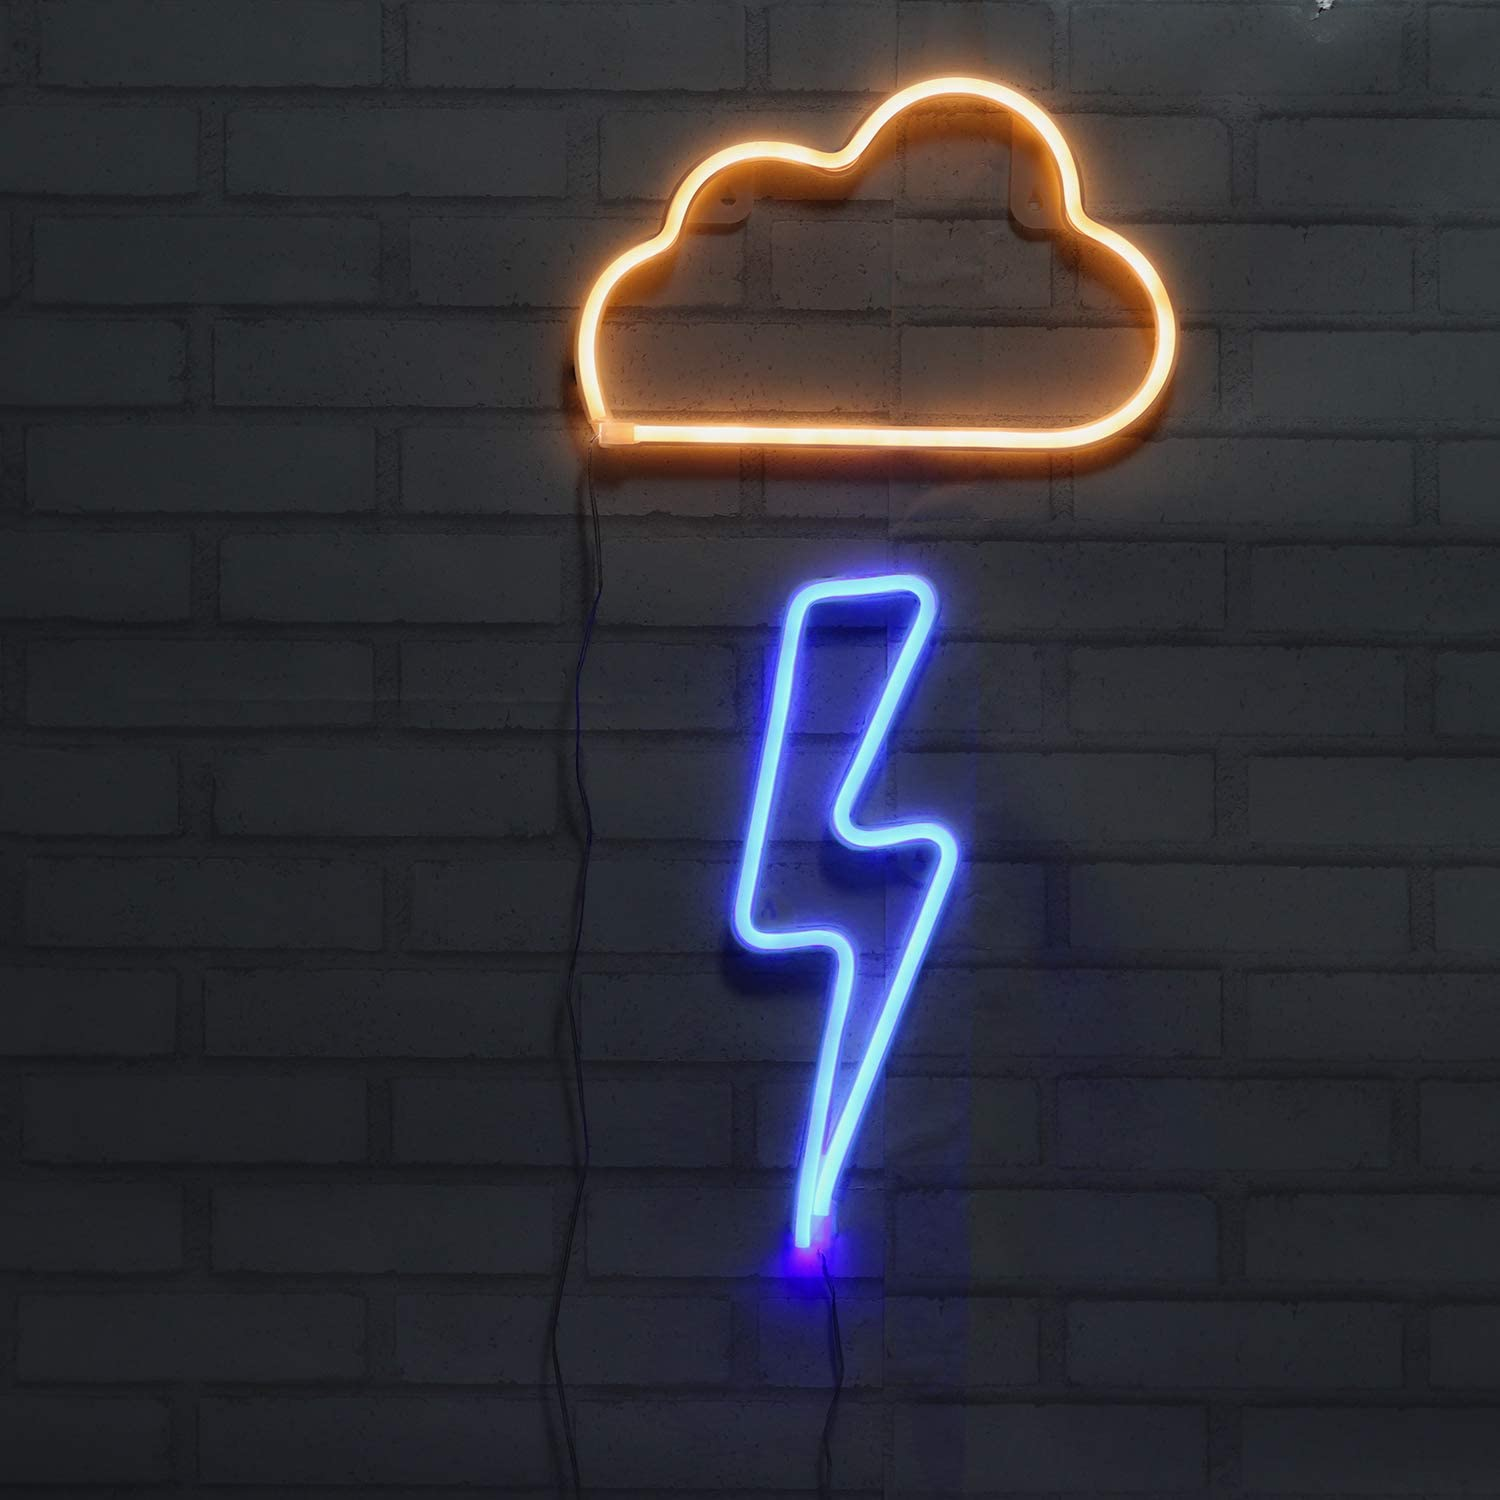 Neon Sign Lights 2 Pack Warm White Cloud Blue Lightning Bolt Game Room Lighting Battery And Usb Powered Aesthetic Wall Art Led Decorative Lights For Dorm Bedroom Neon Night Lamp Amazon Com